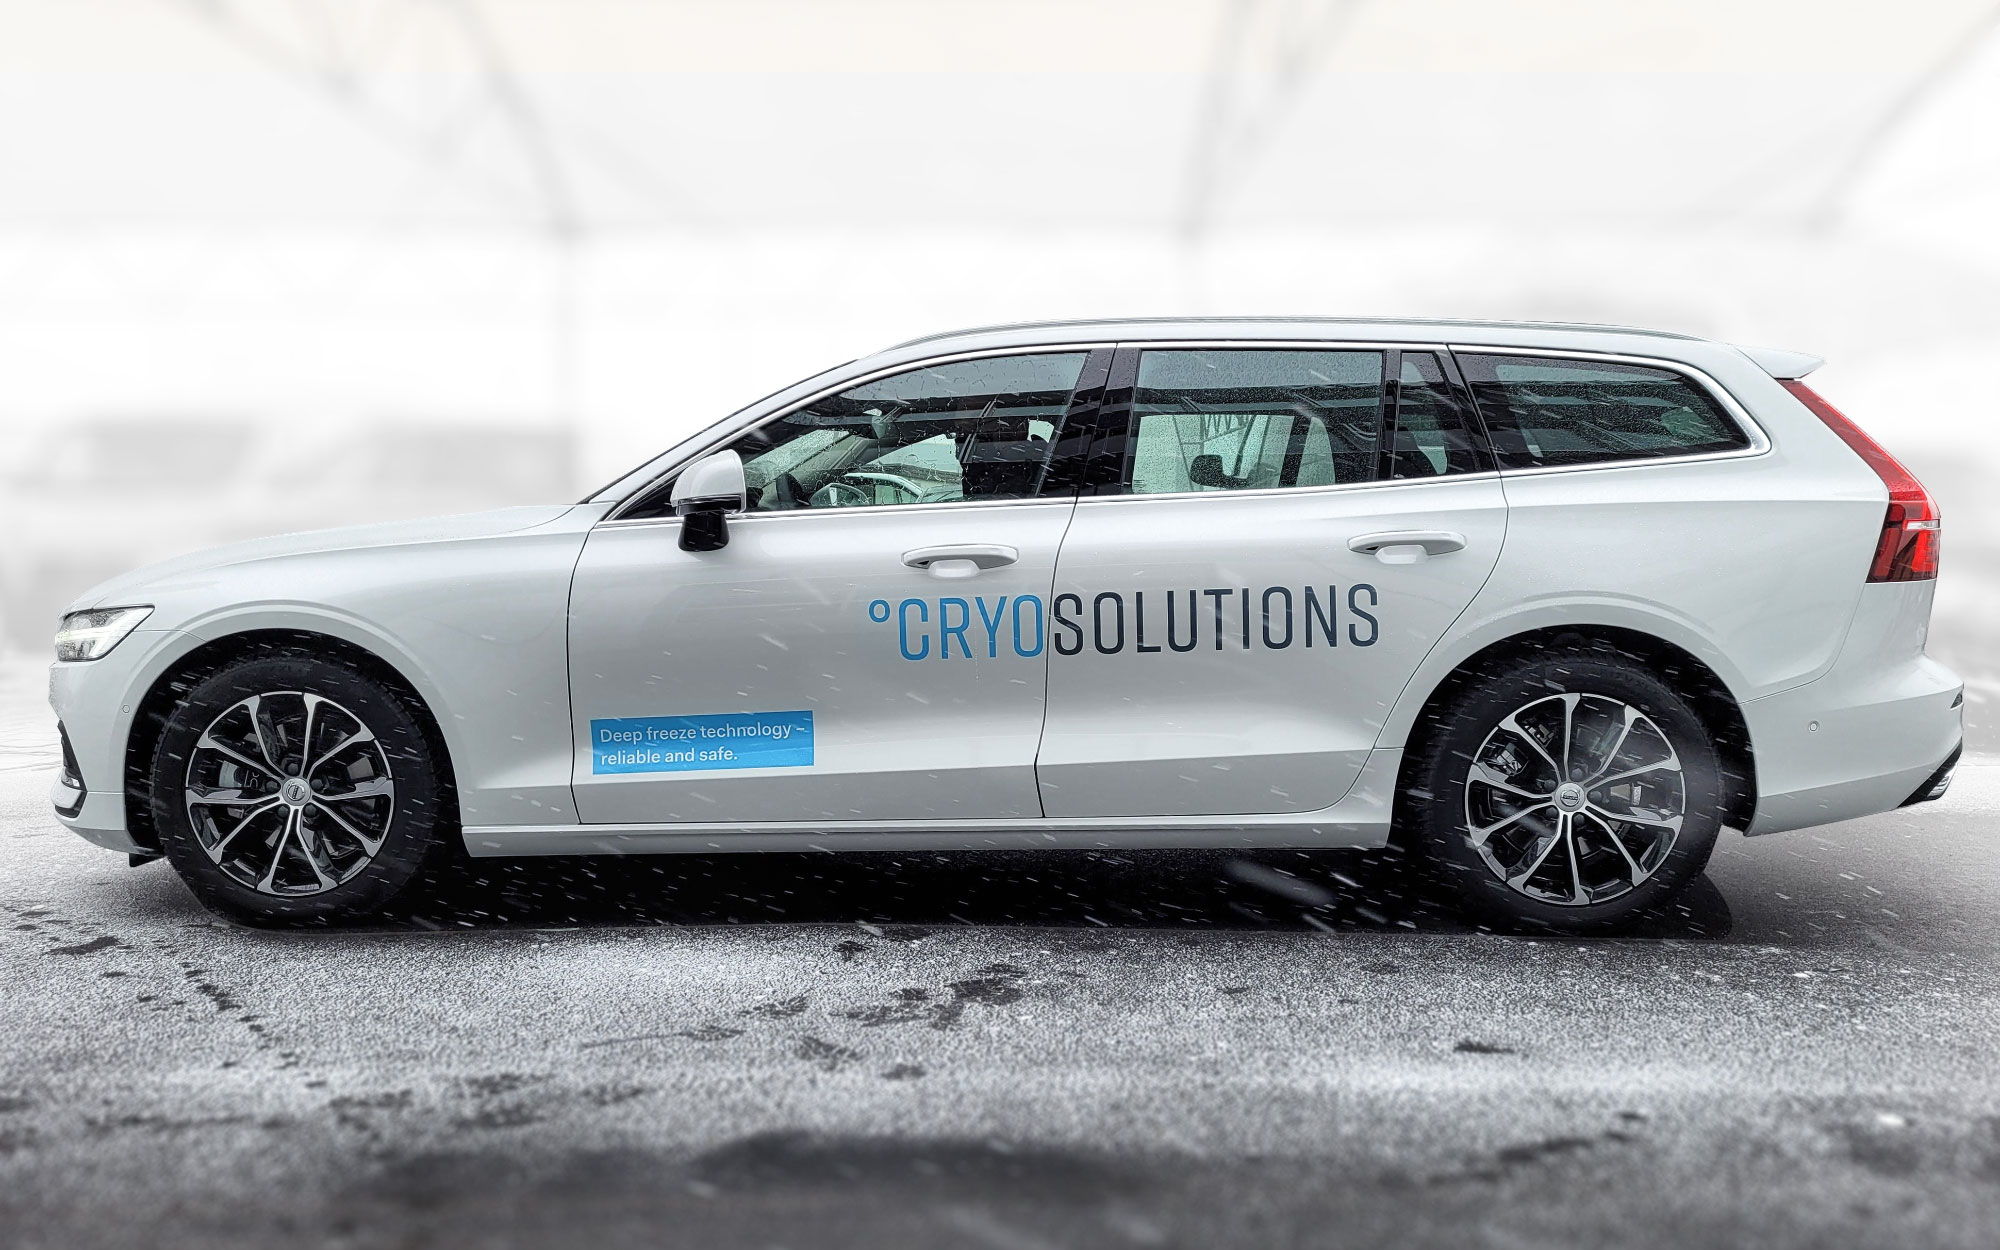 Cryosolutions autobeschiftung